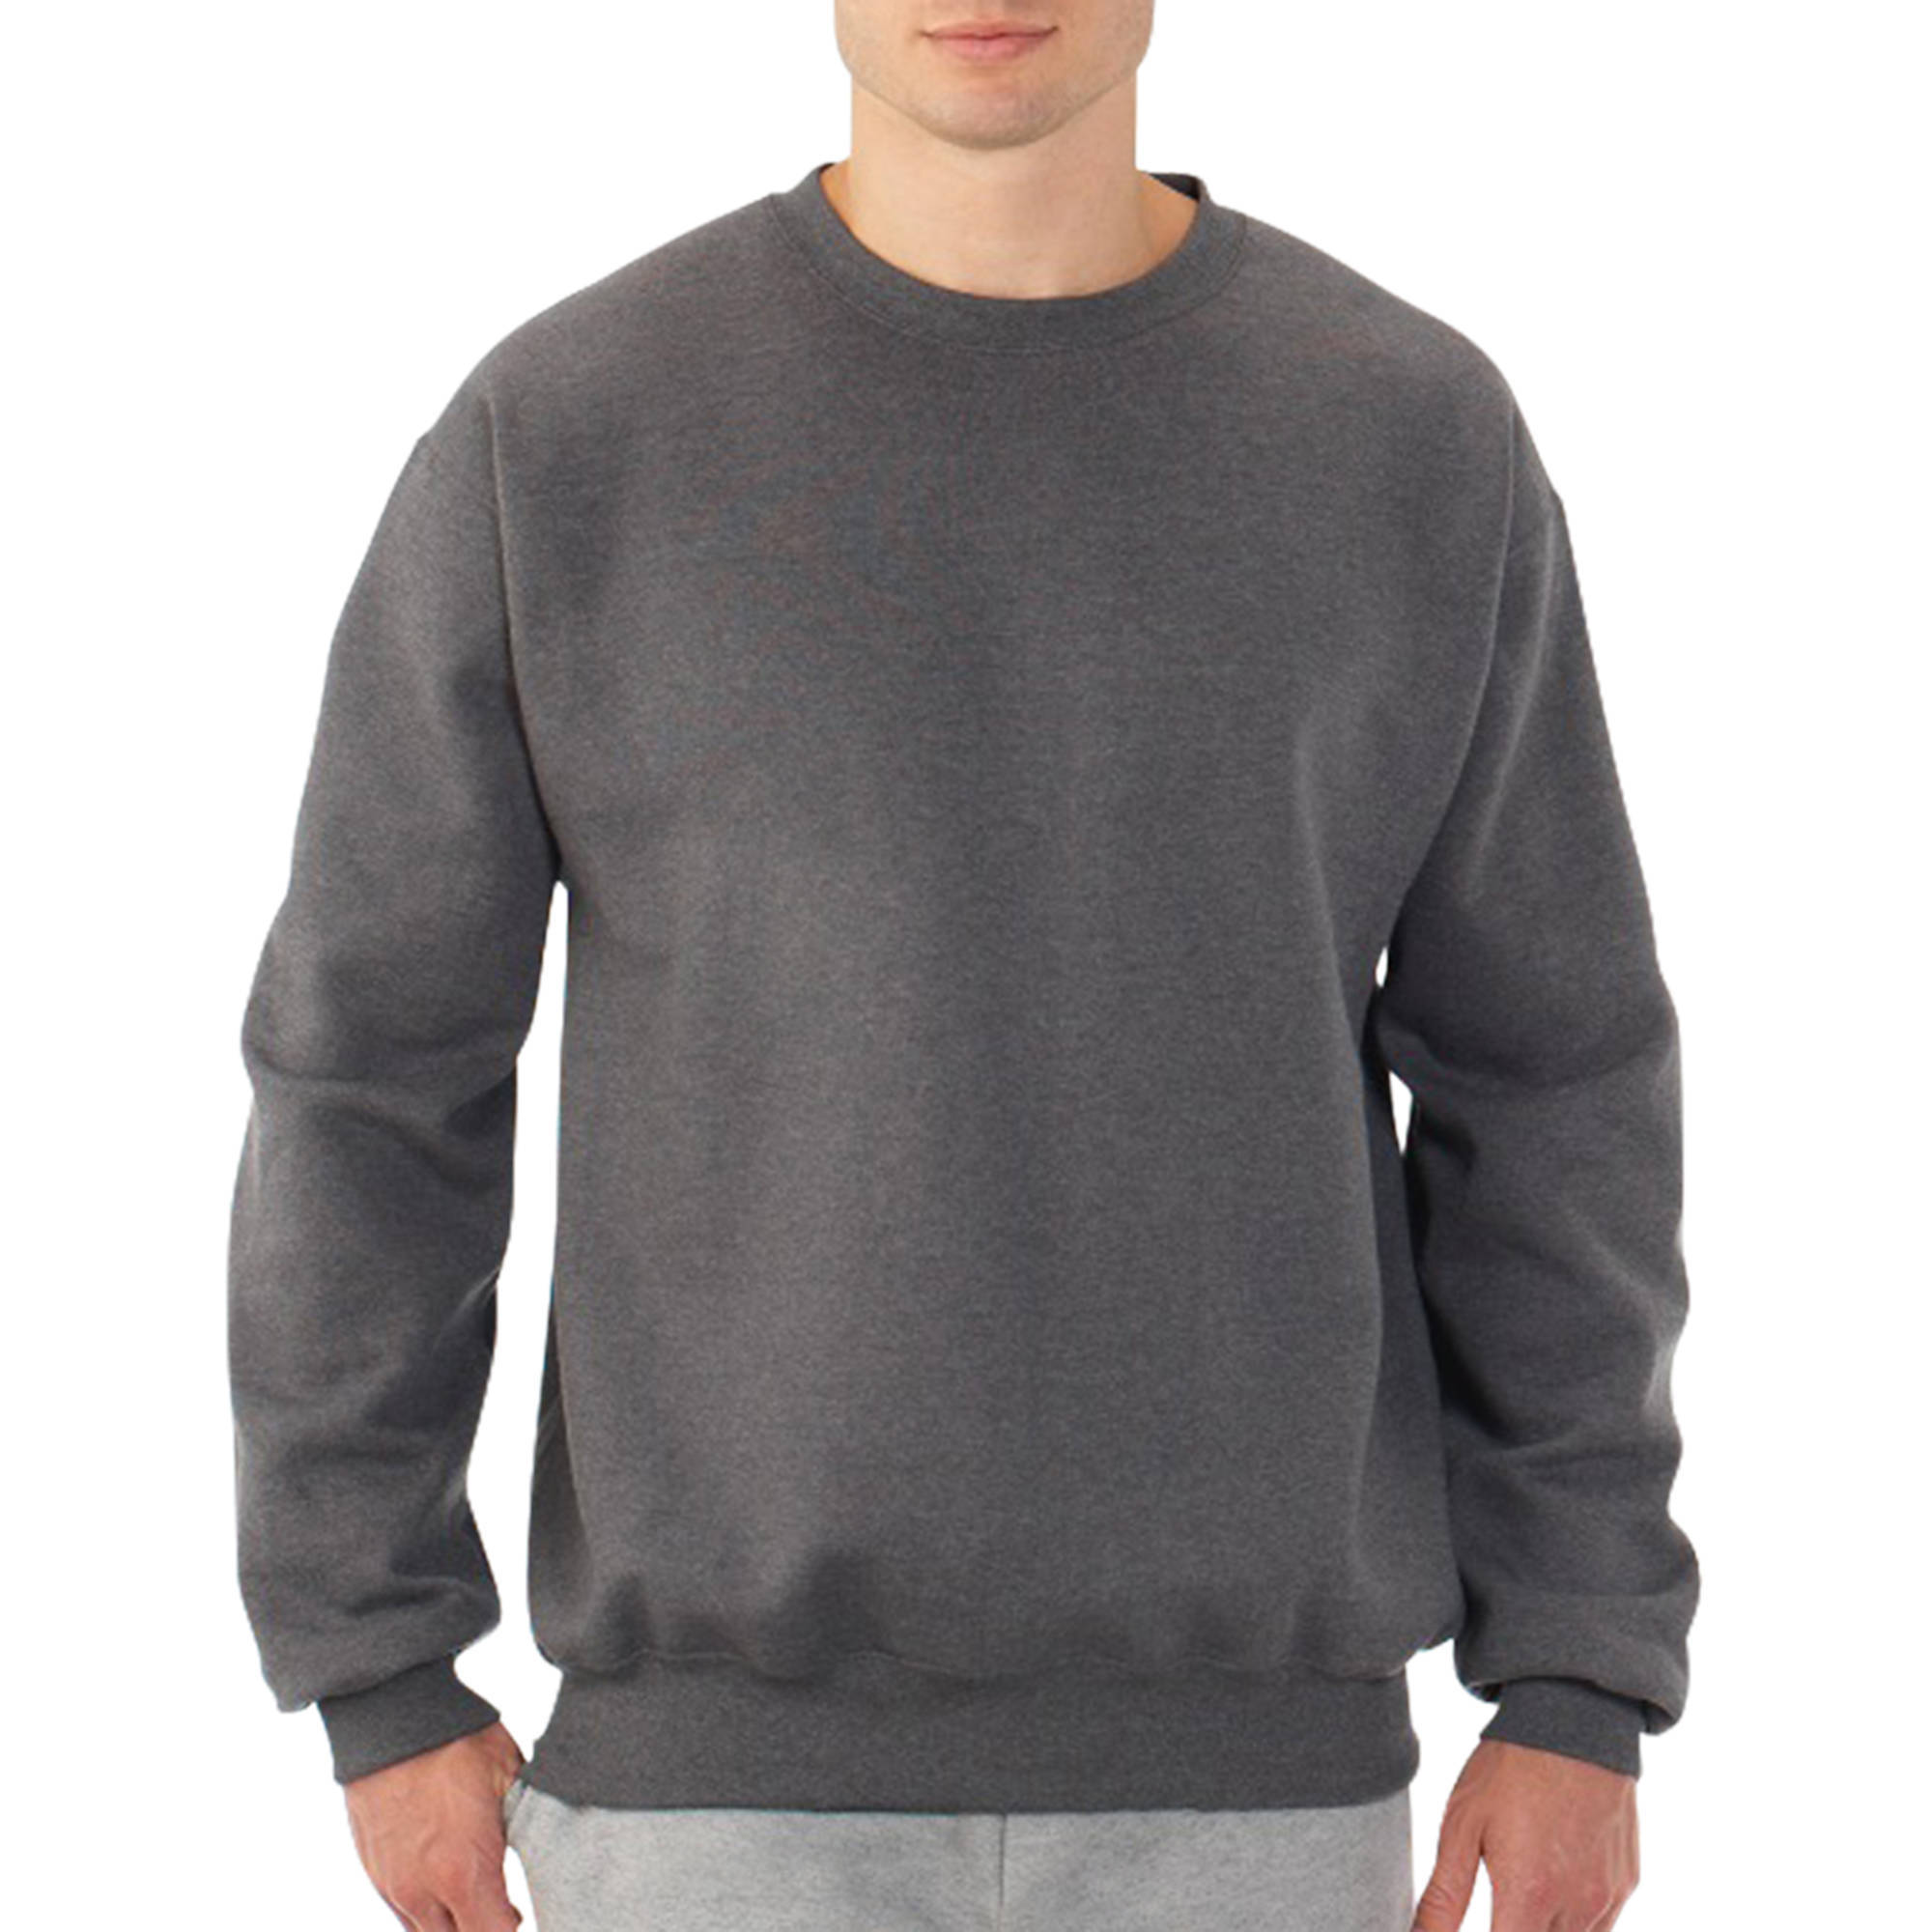 Big Men's Fleece Crew Sweatshirt